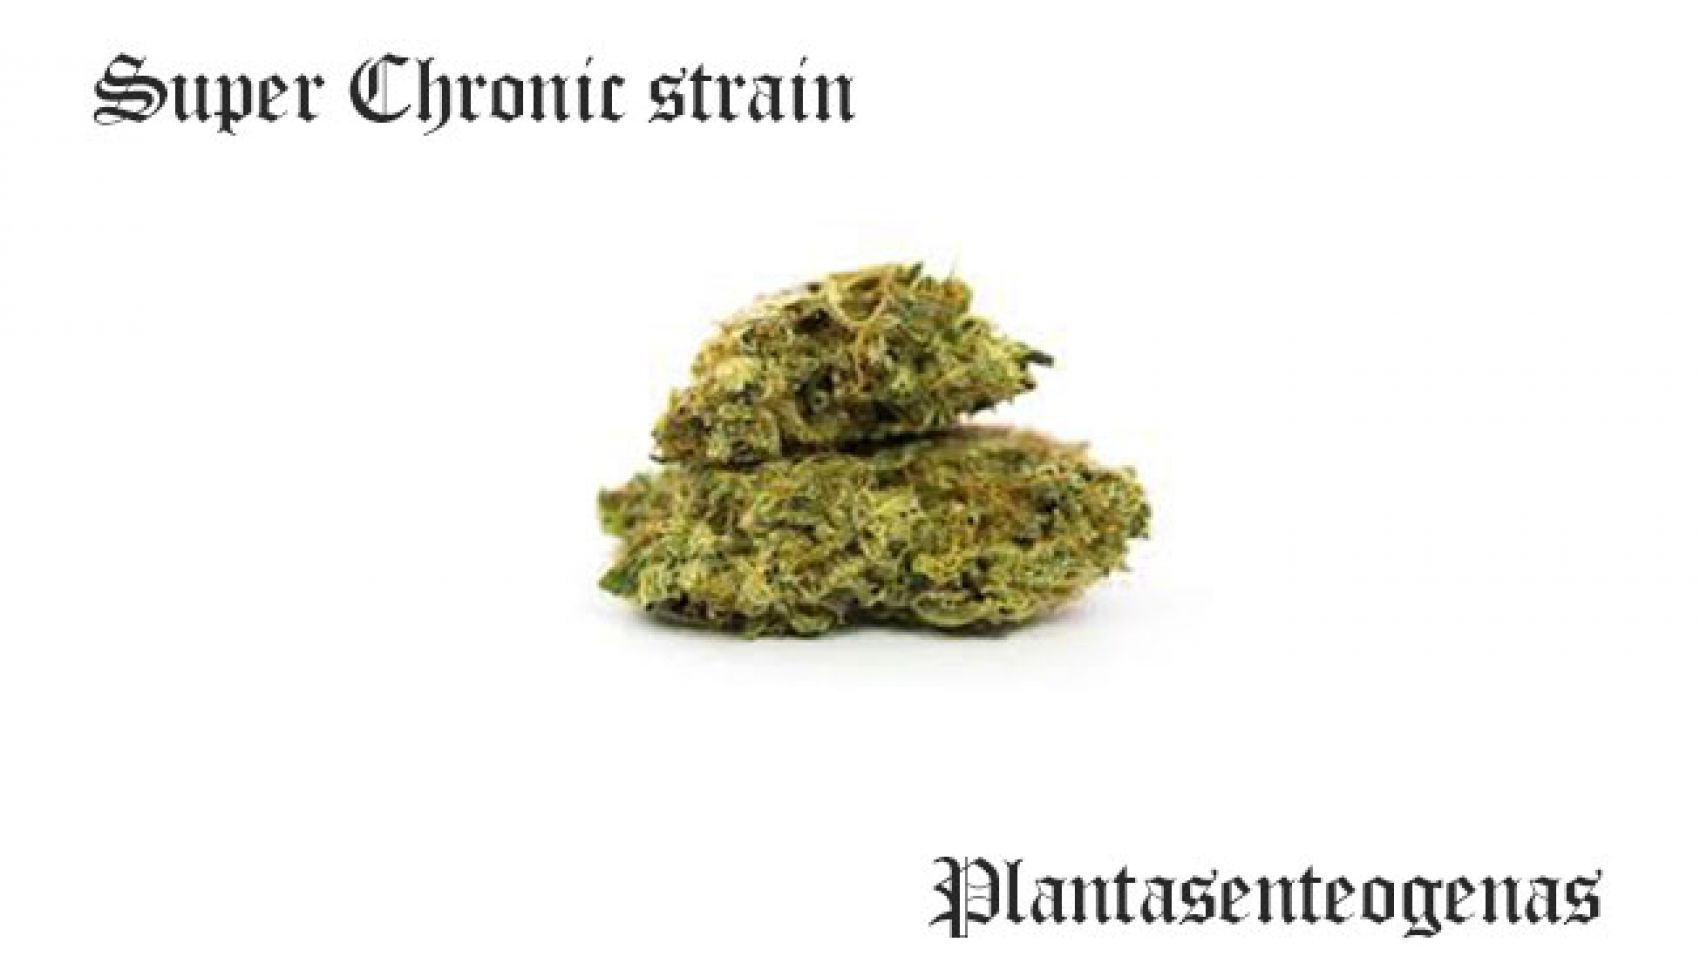 Super Chronic strain